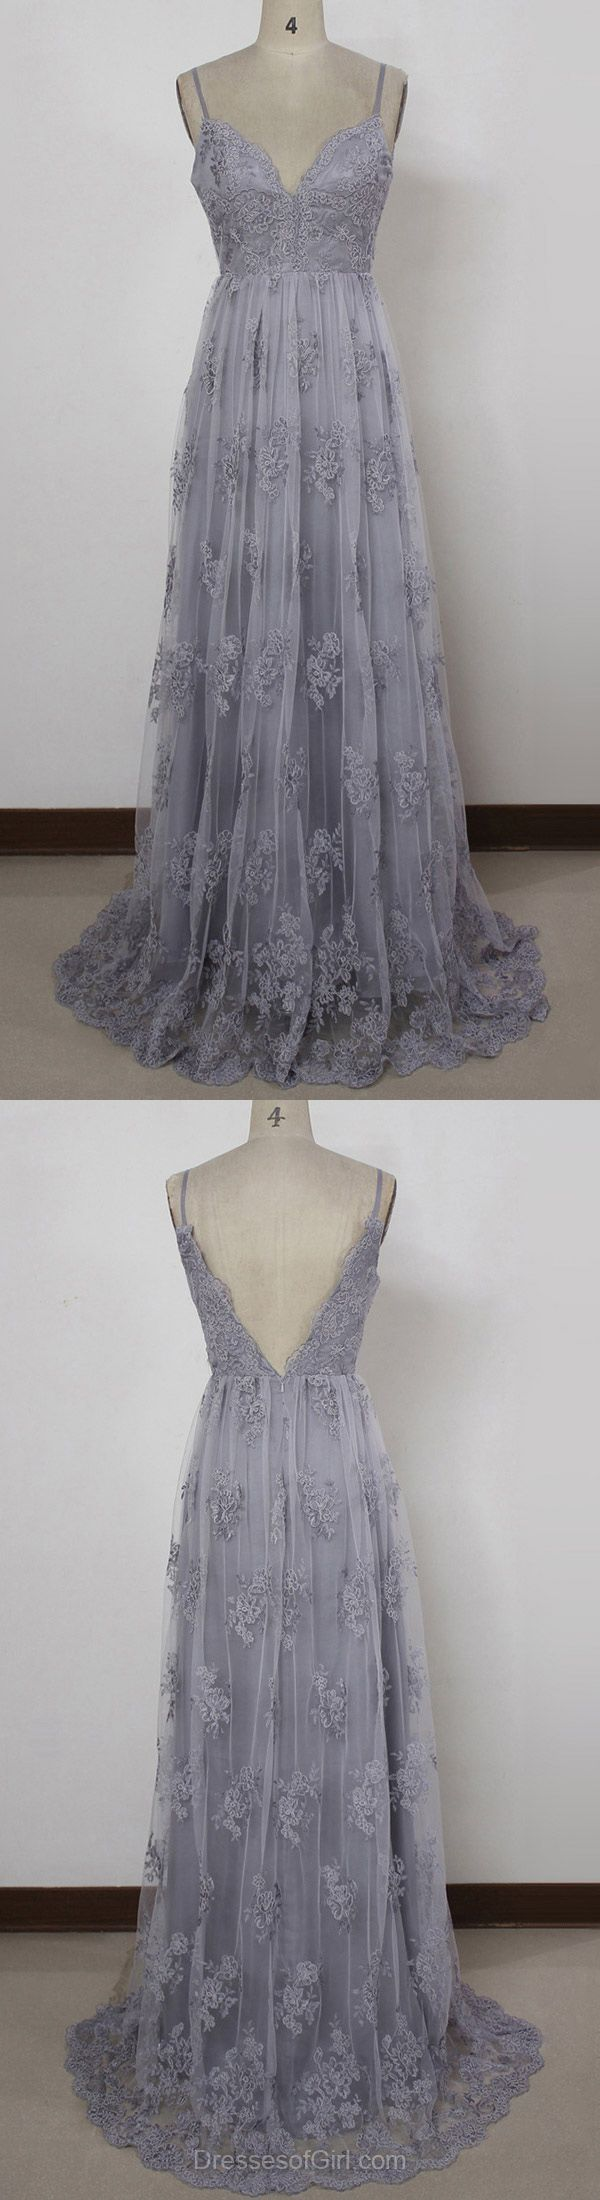 Lace prom dresses aline vneck party dress tulle sweep train long